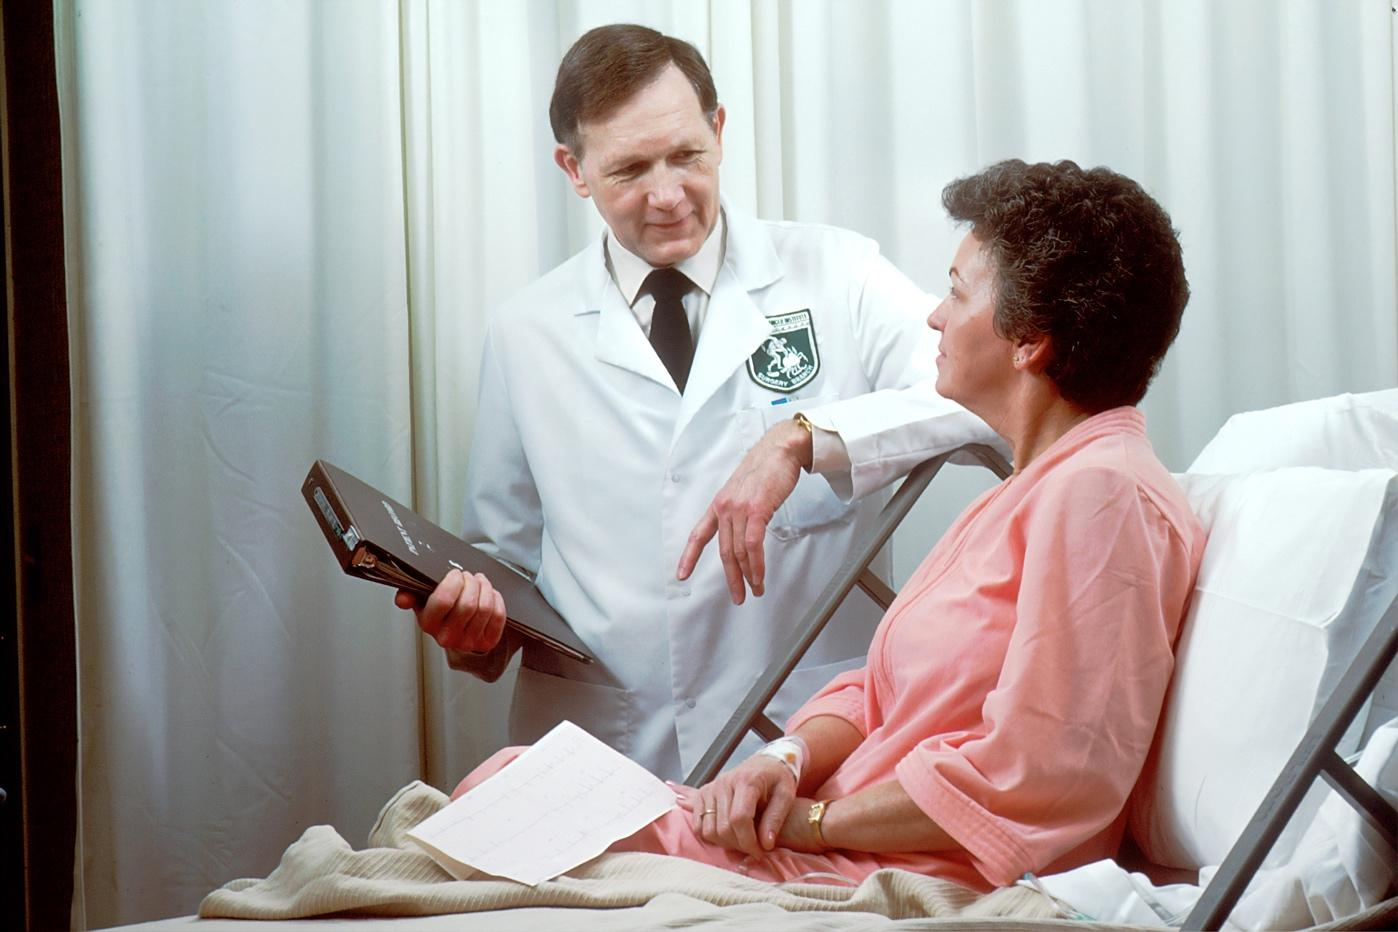 A doctor checking a patient's blood pressure  Description automatically generated with low confidence